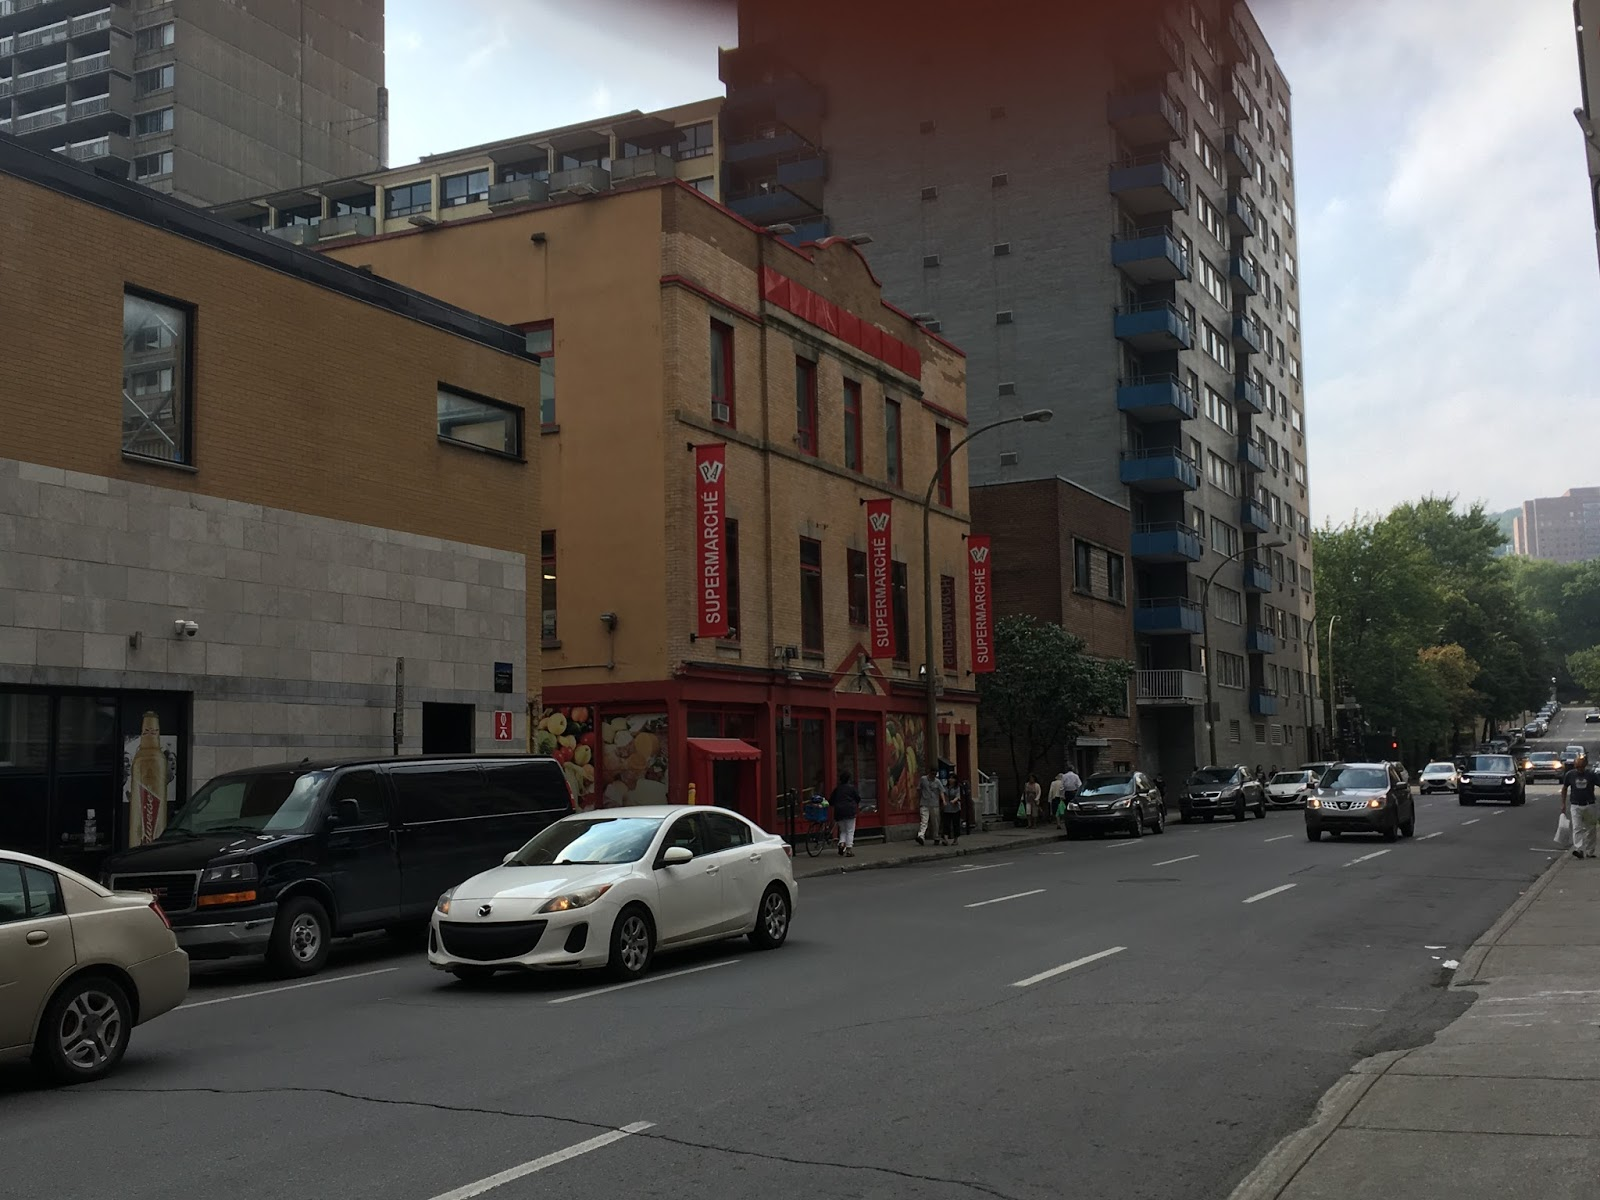 looking for some nsa in montreal